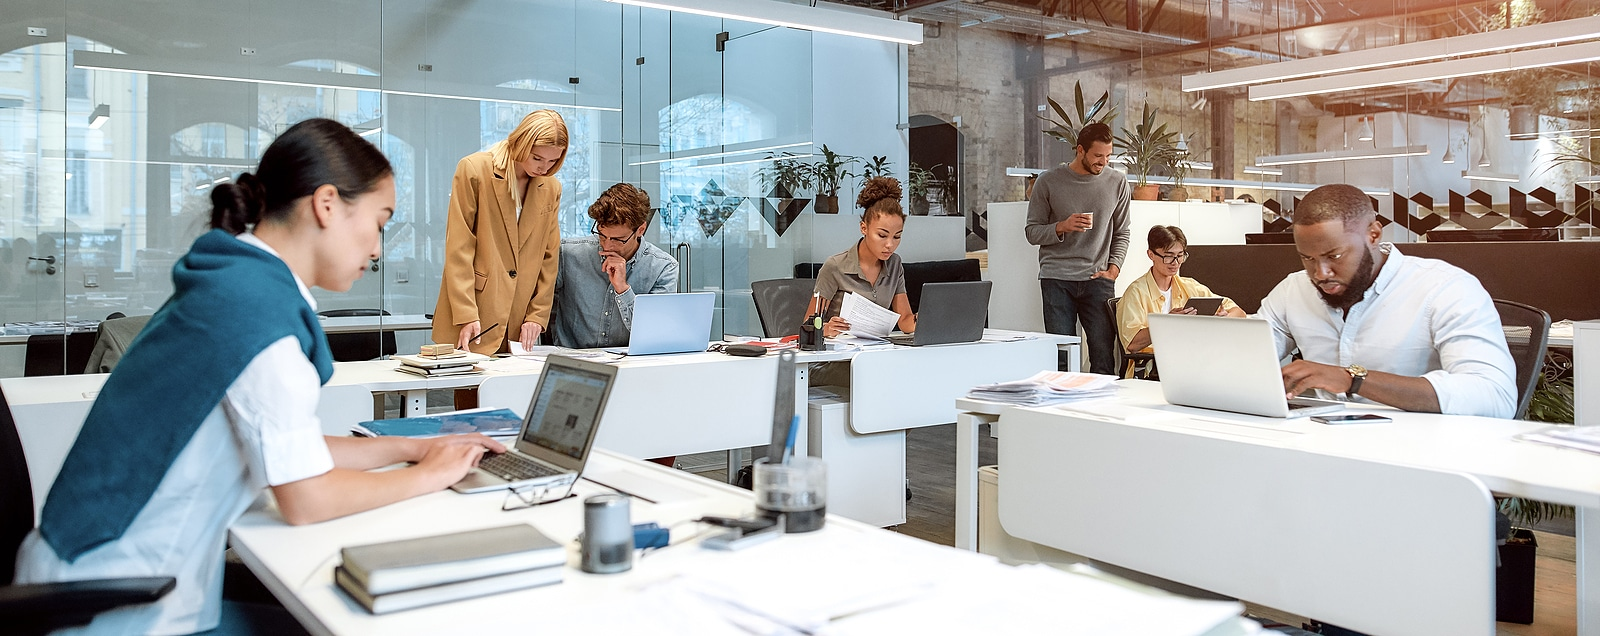 Managing Workplace Culture